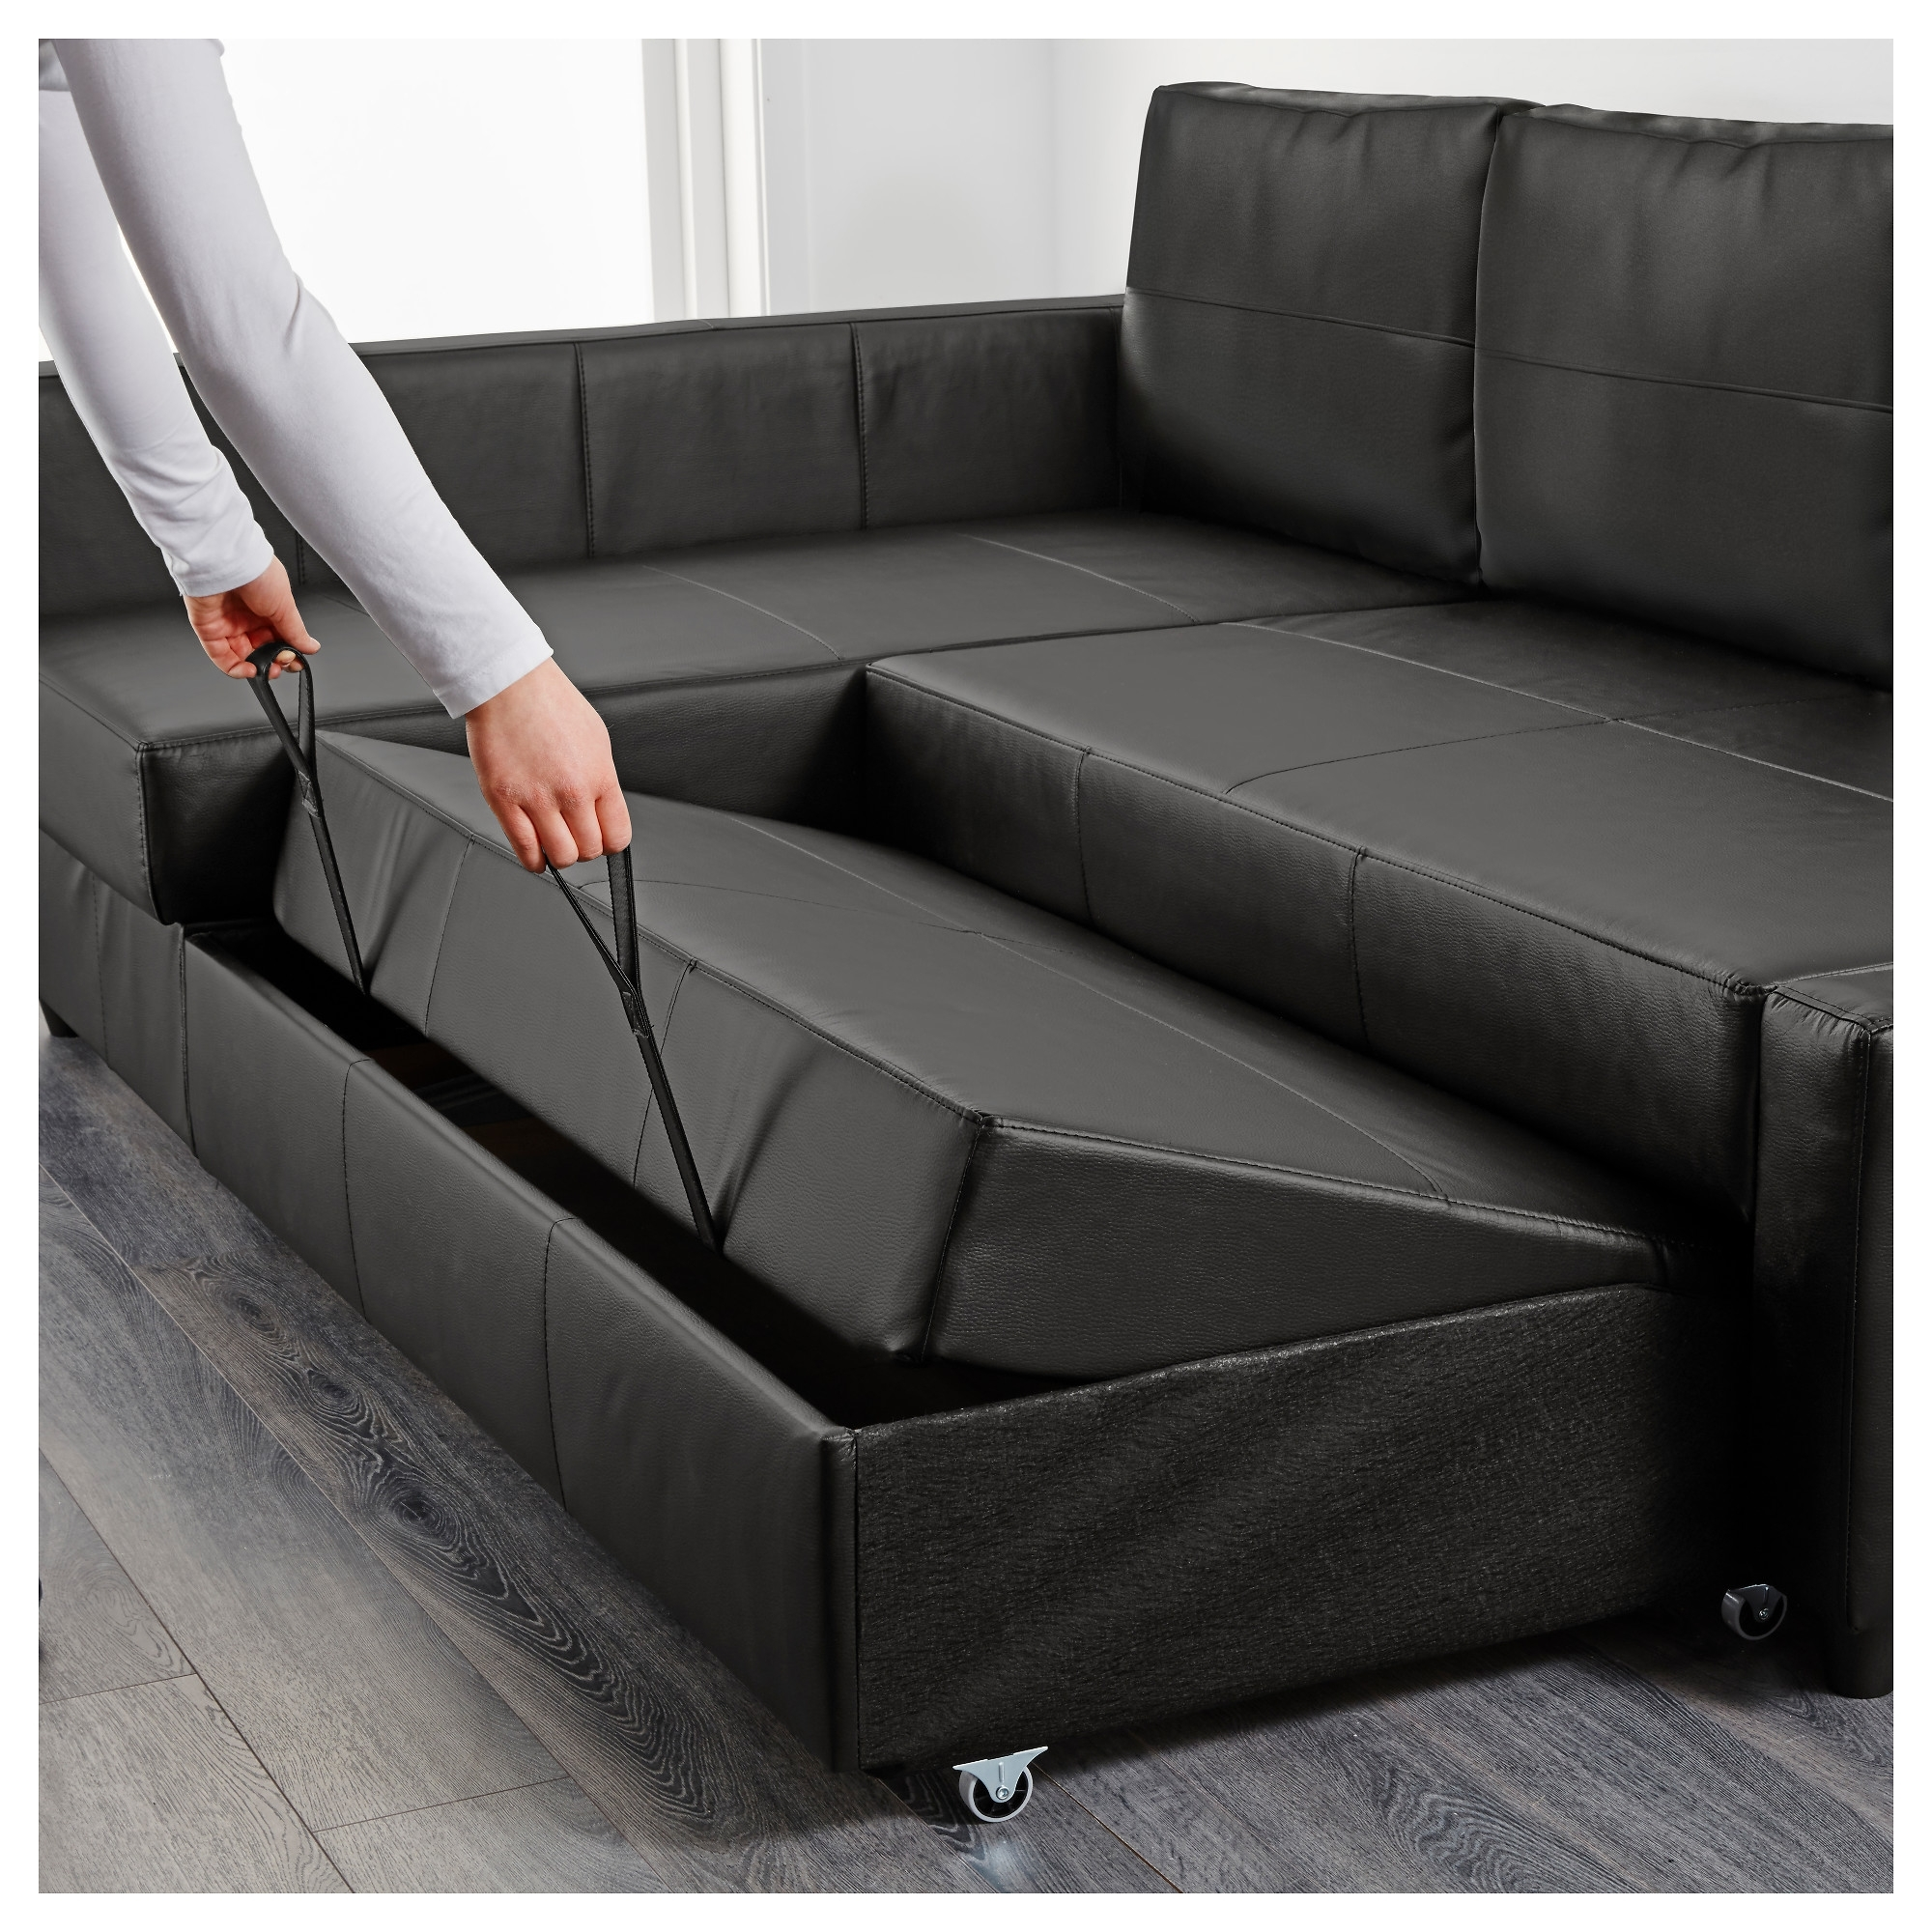 Friheten Corner Sofa-Bed With Storage Bomstad Black - Ikea with regard to Ikea Corner Sofas With Storage (Image 3 of 10)